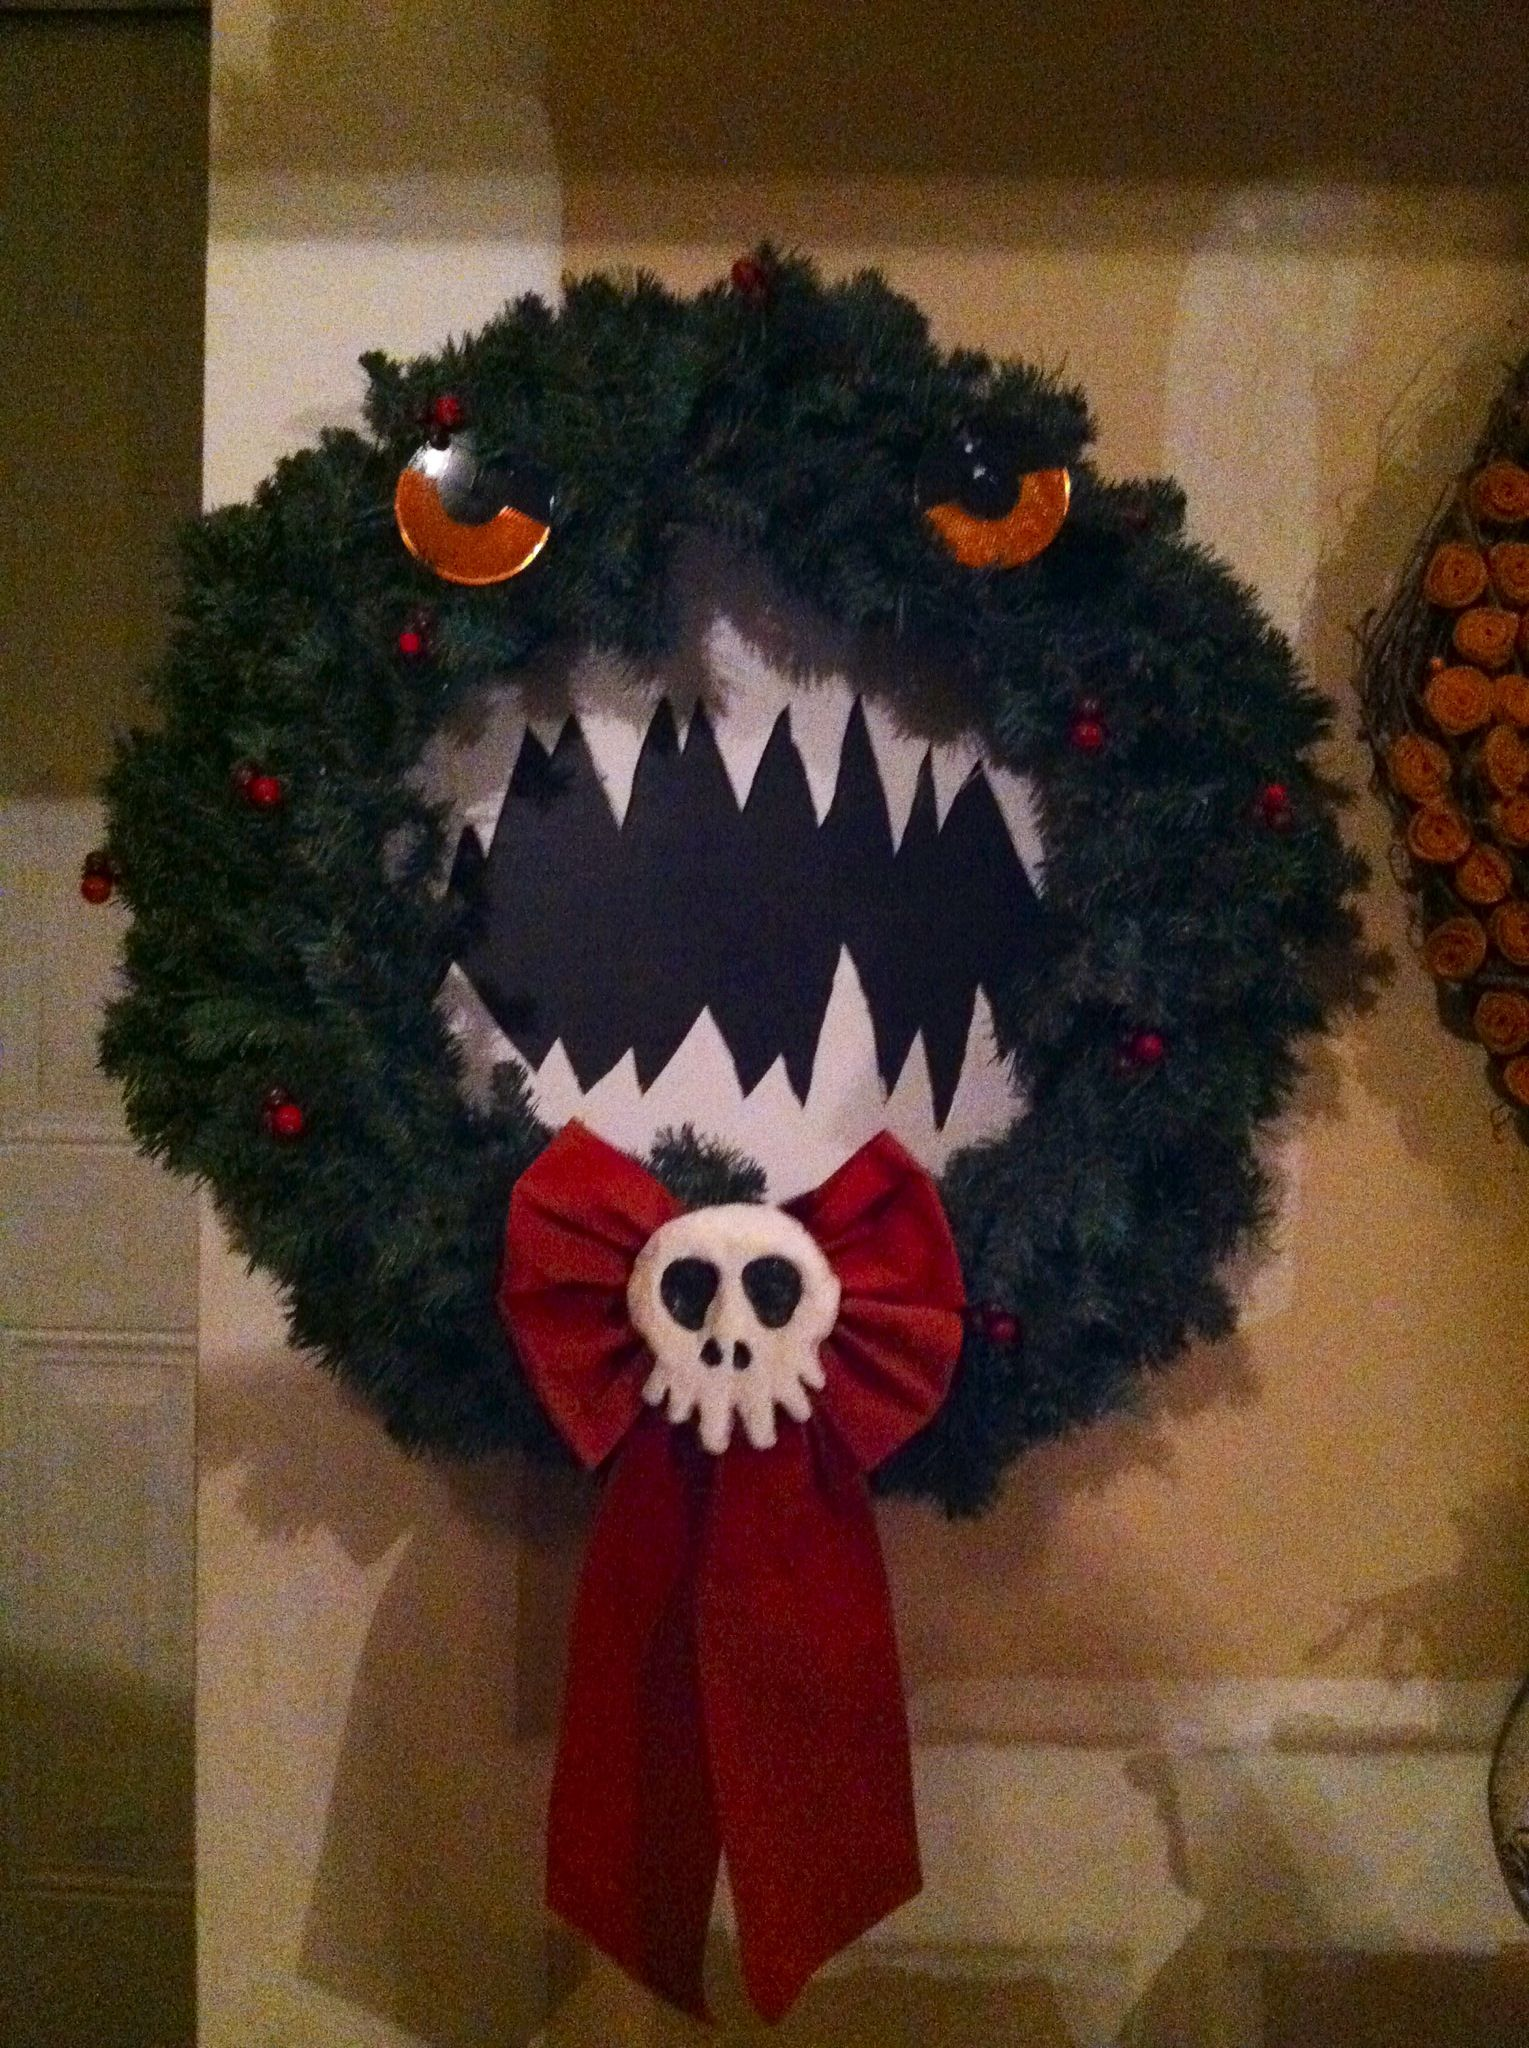 My diy nightmare before Christmas wreath reflectors for eyes so I